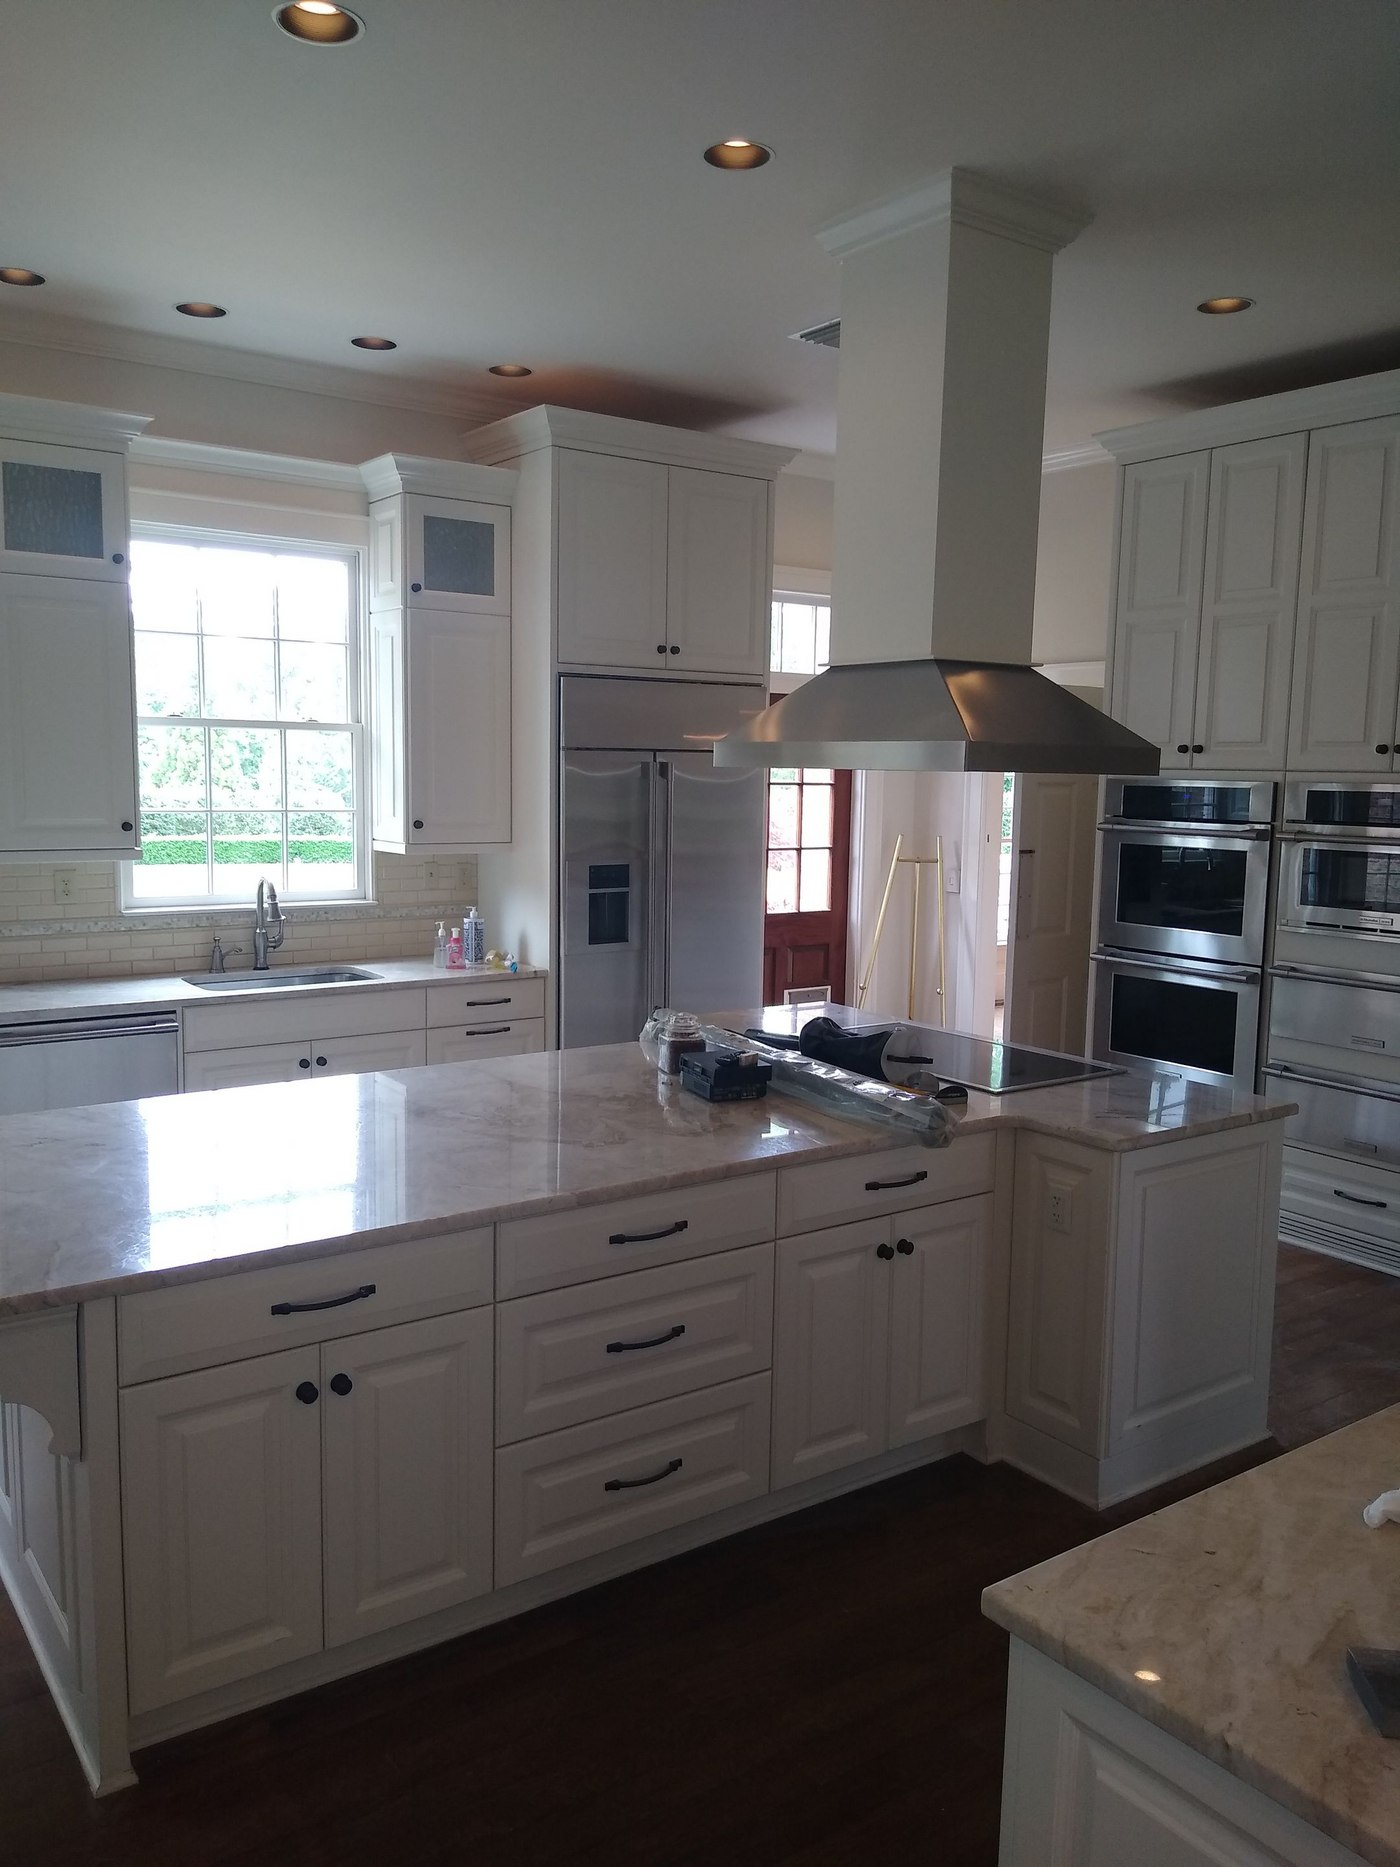 Can I paint my kitchen cabinets?